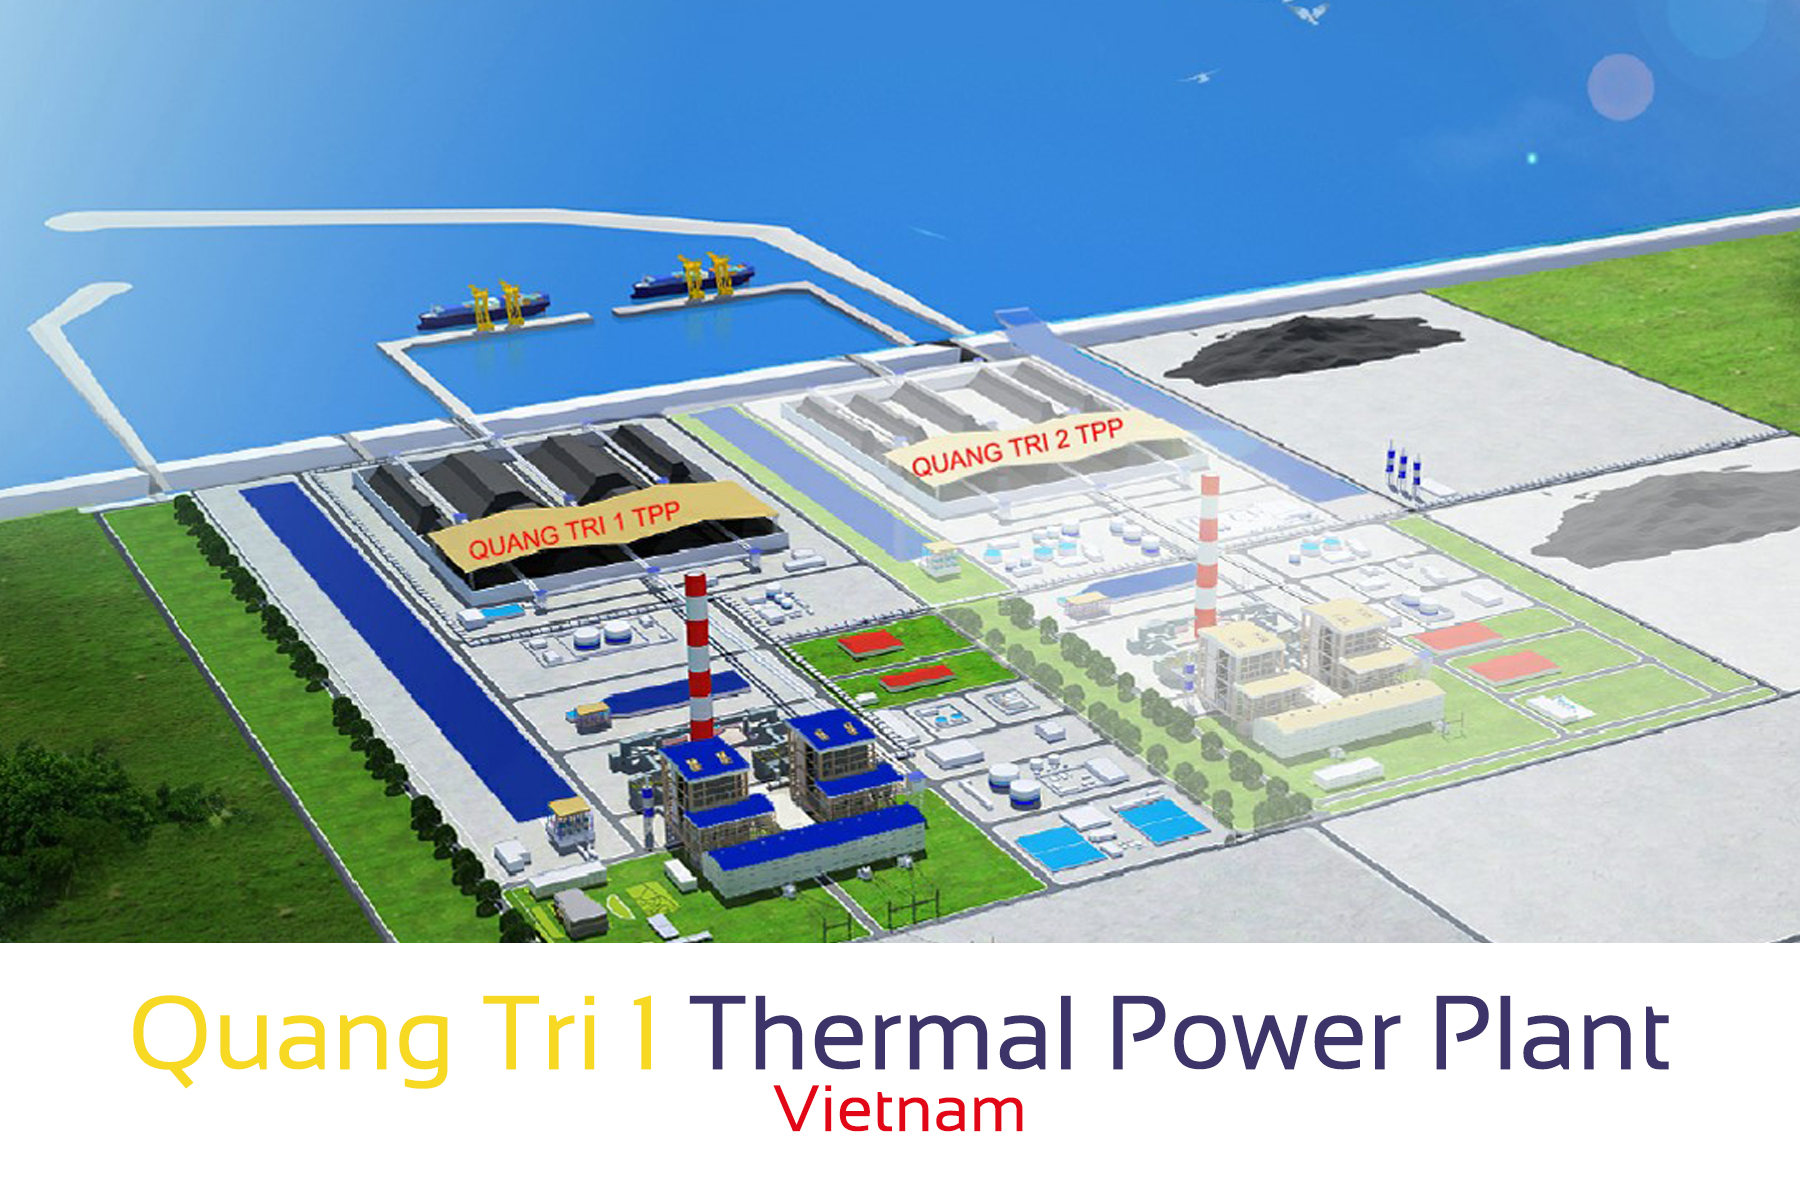 Quang Tri 1 Thermal Power Plant Project